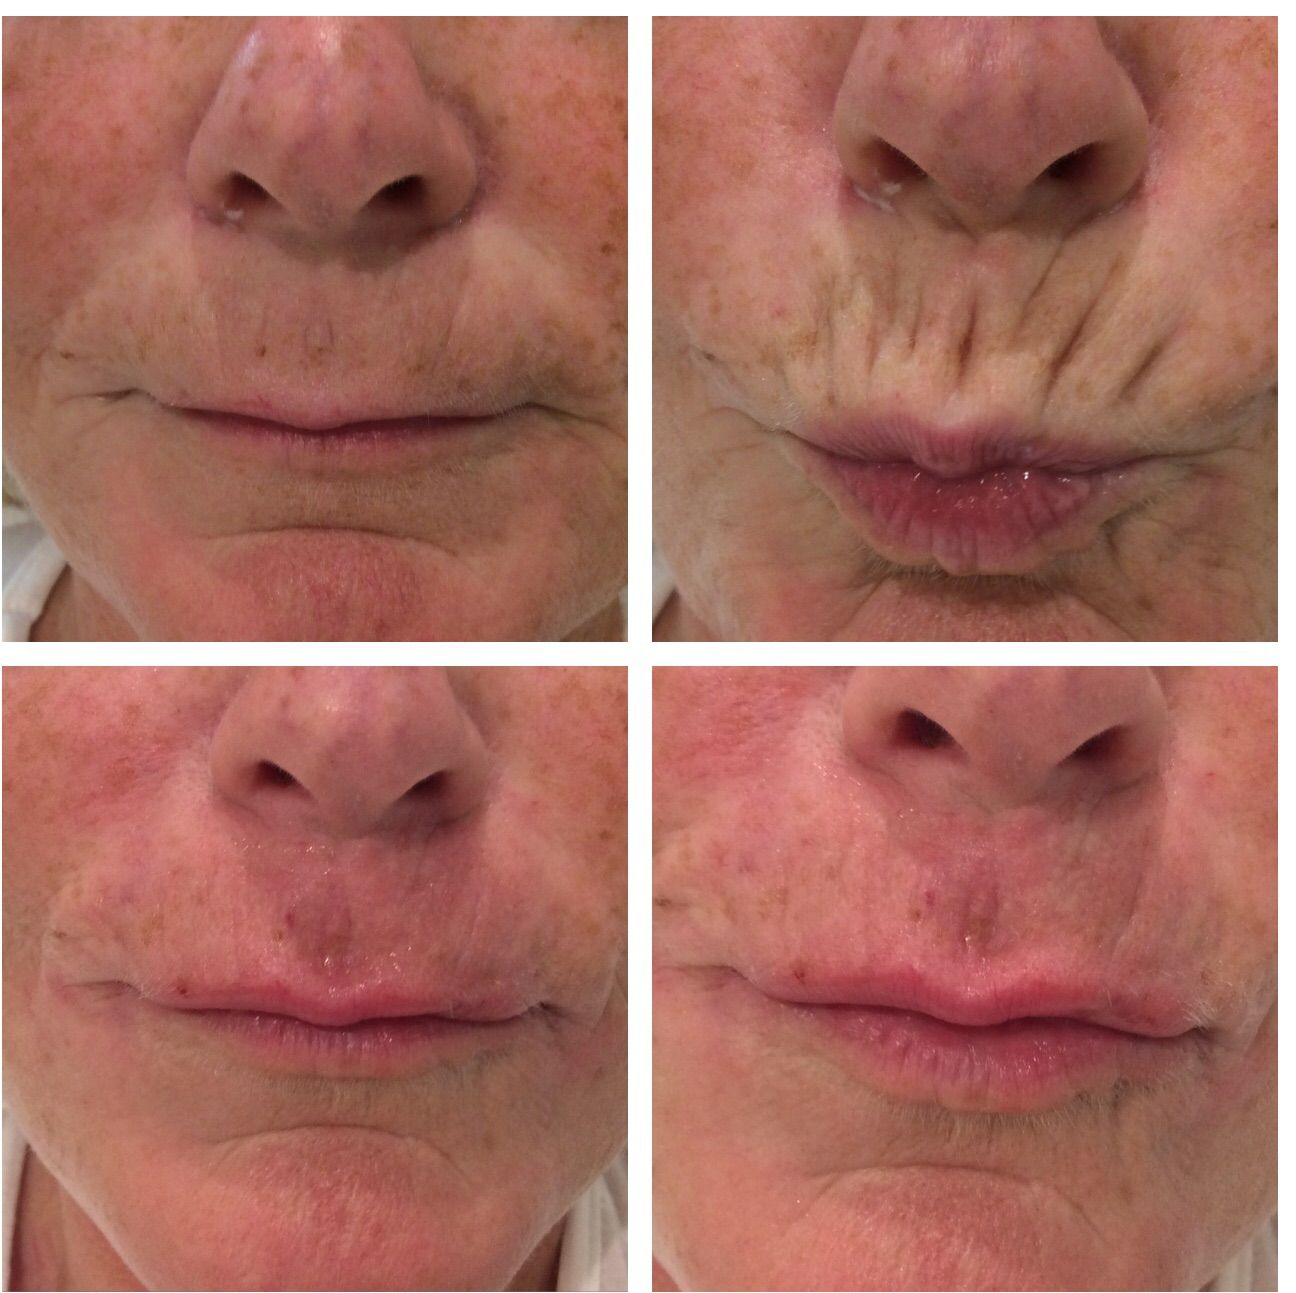 Before & After PDO Threads to top lip at AB Medical UK